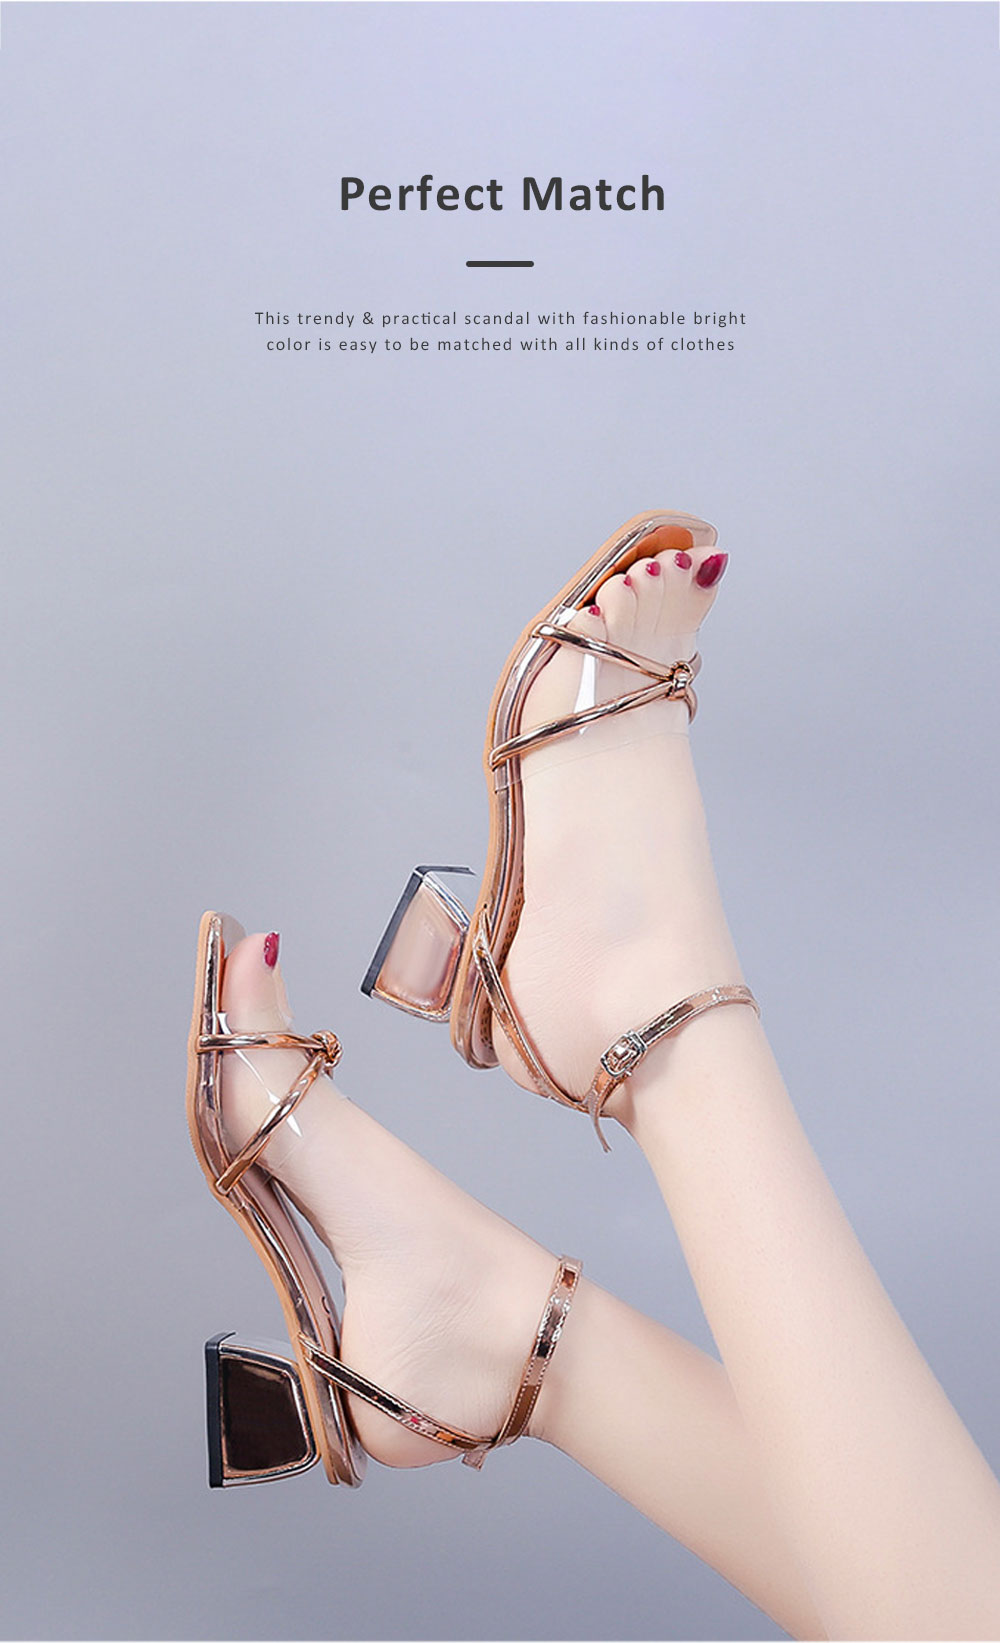 Medium-Height Thick Heel Scandal Transparent Fashion Cross Design PU Rubber Open Toe Shoe with Square Head For Women 2